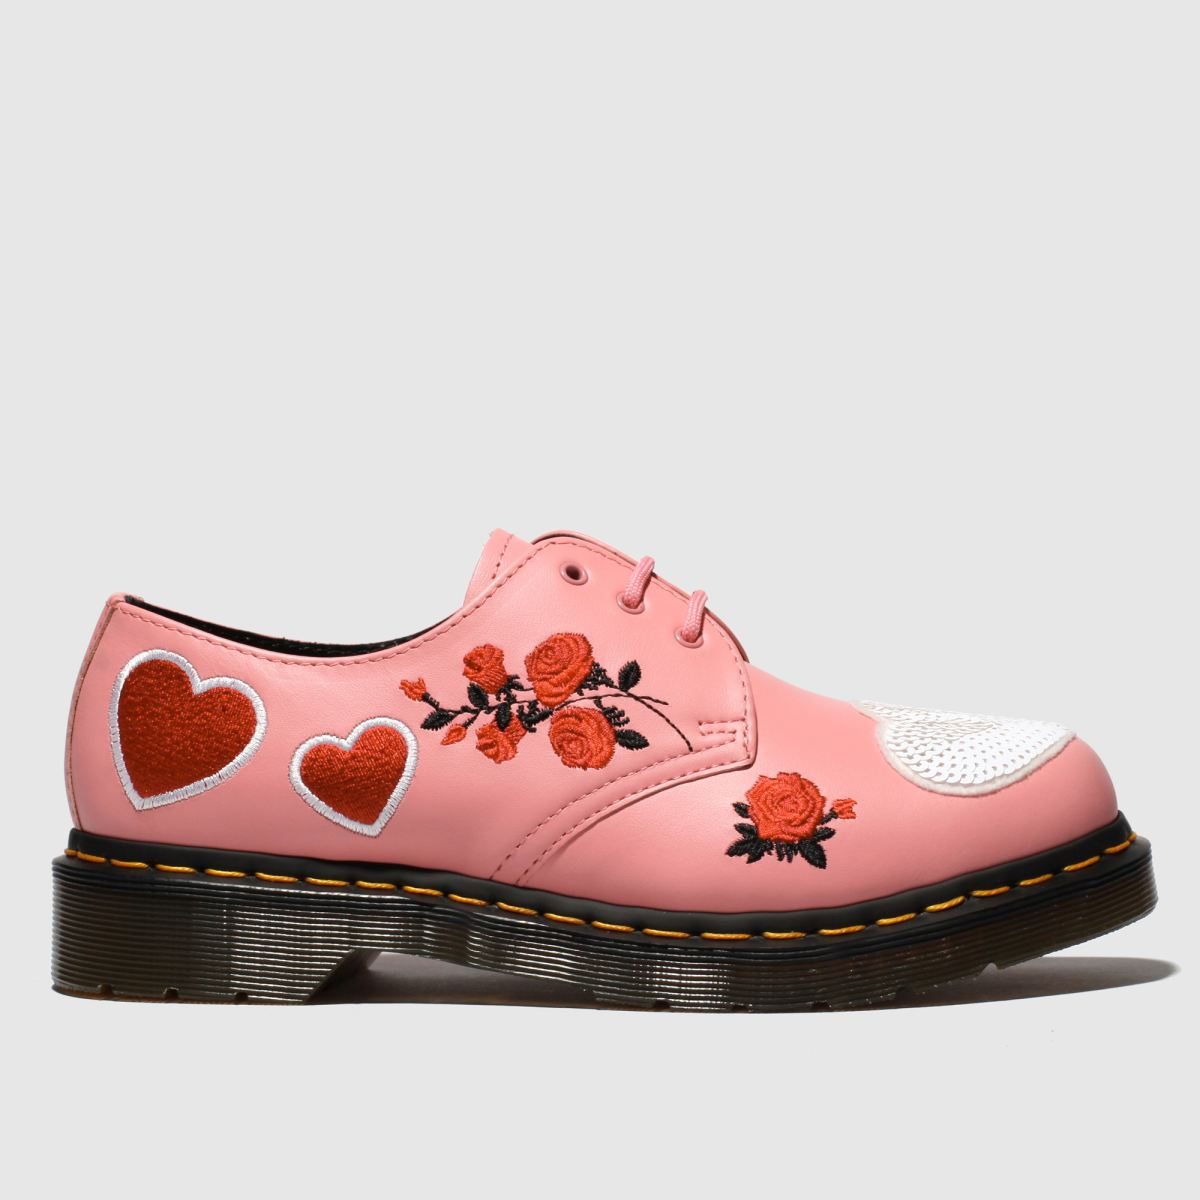 Dr Martens Pink 1461 Hearts Flat Shoes